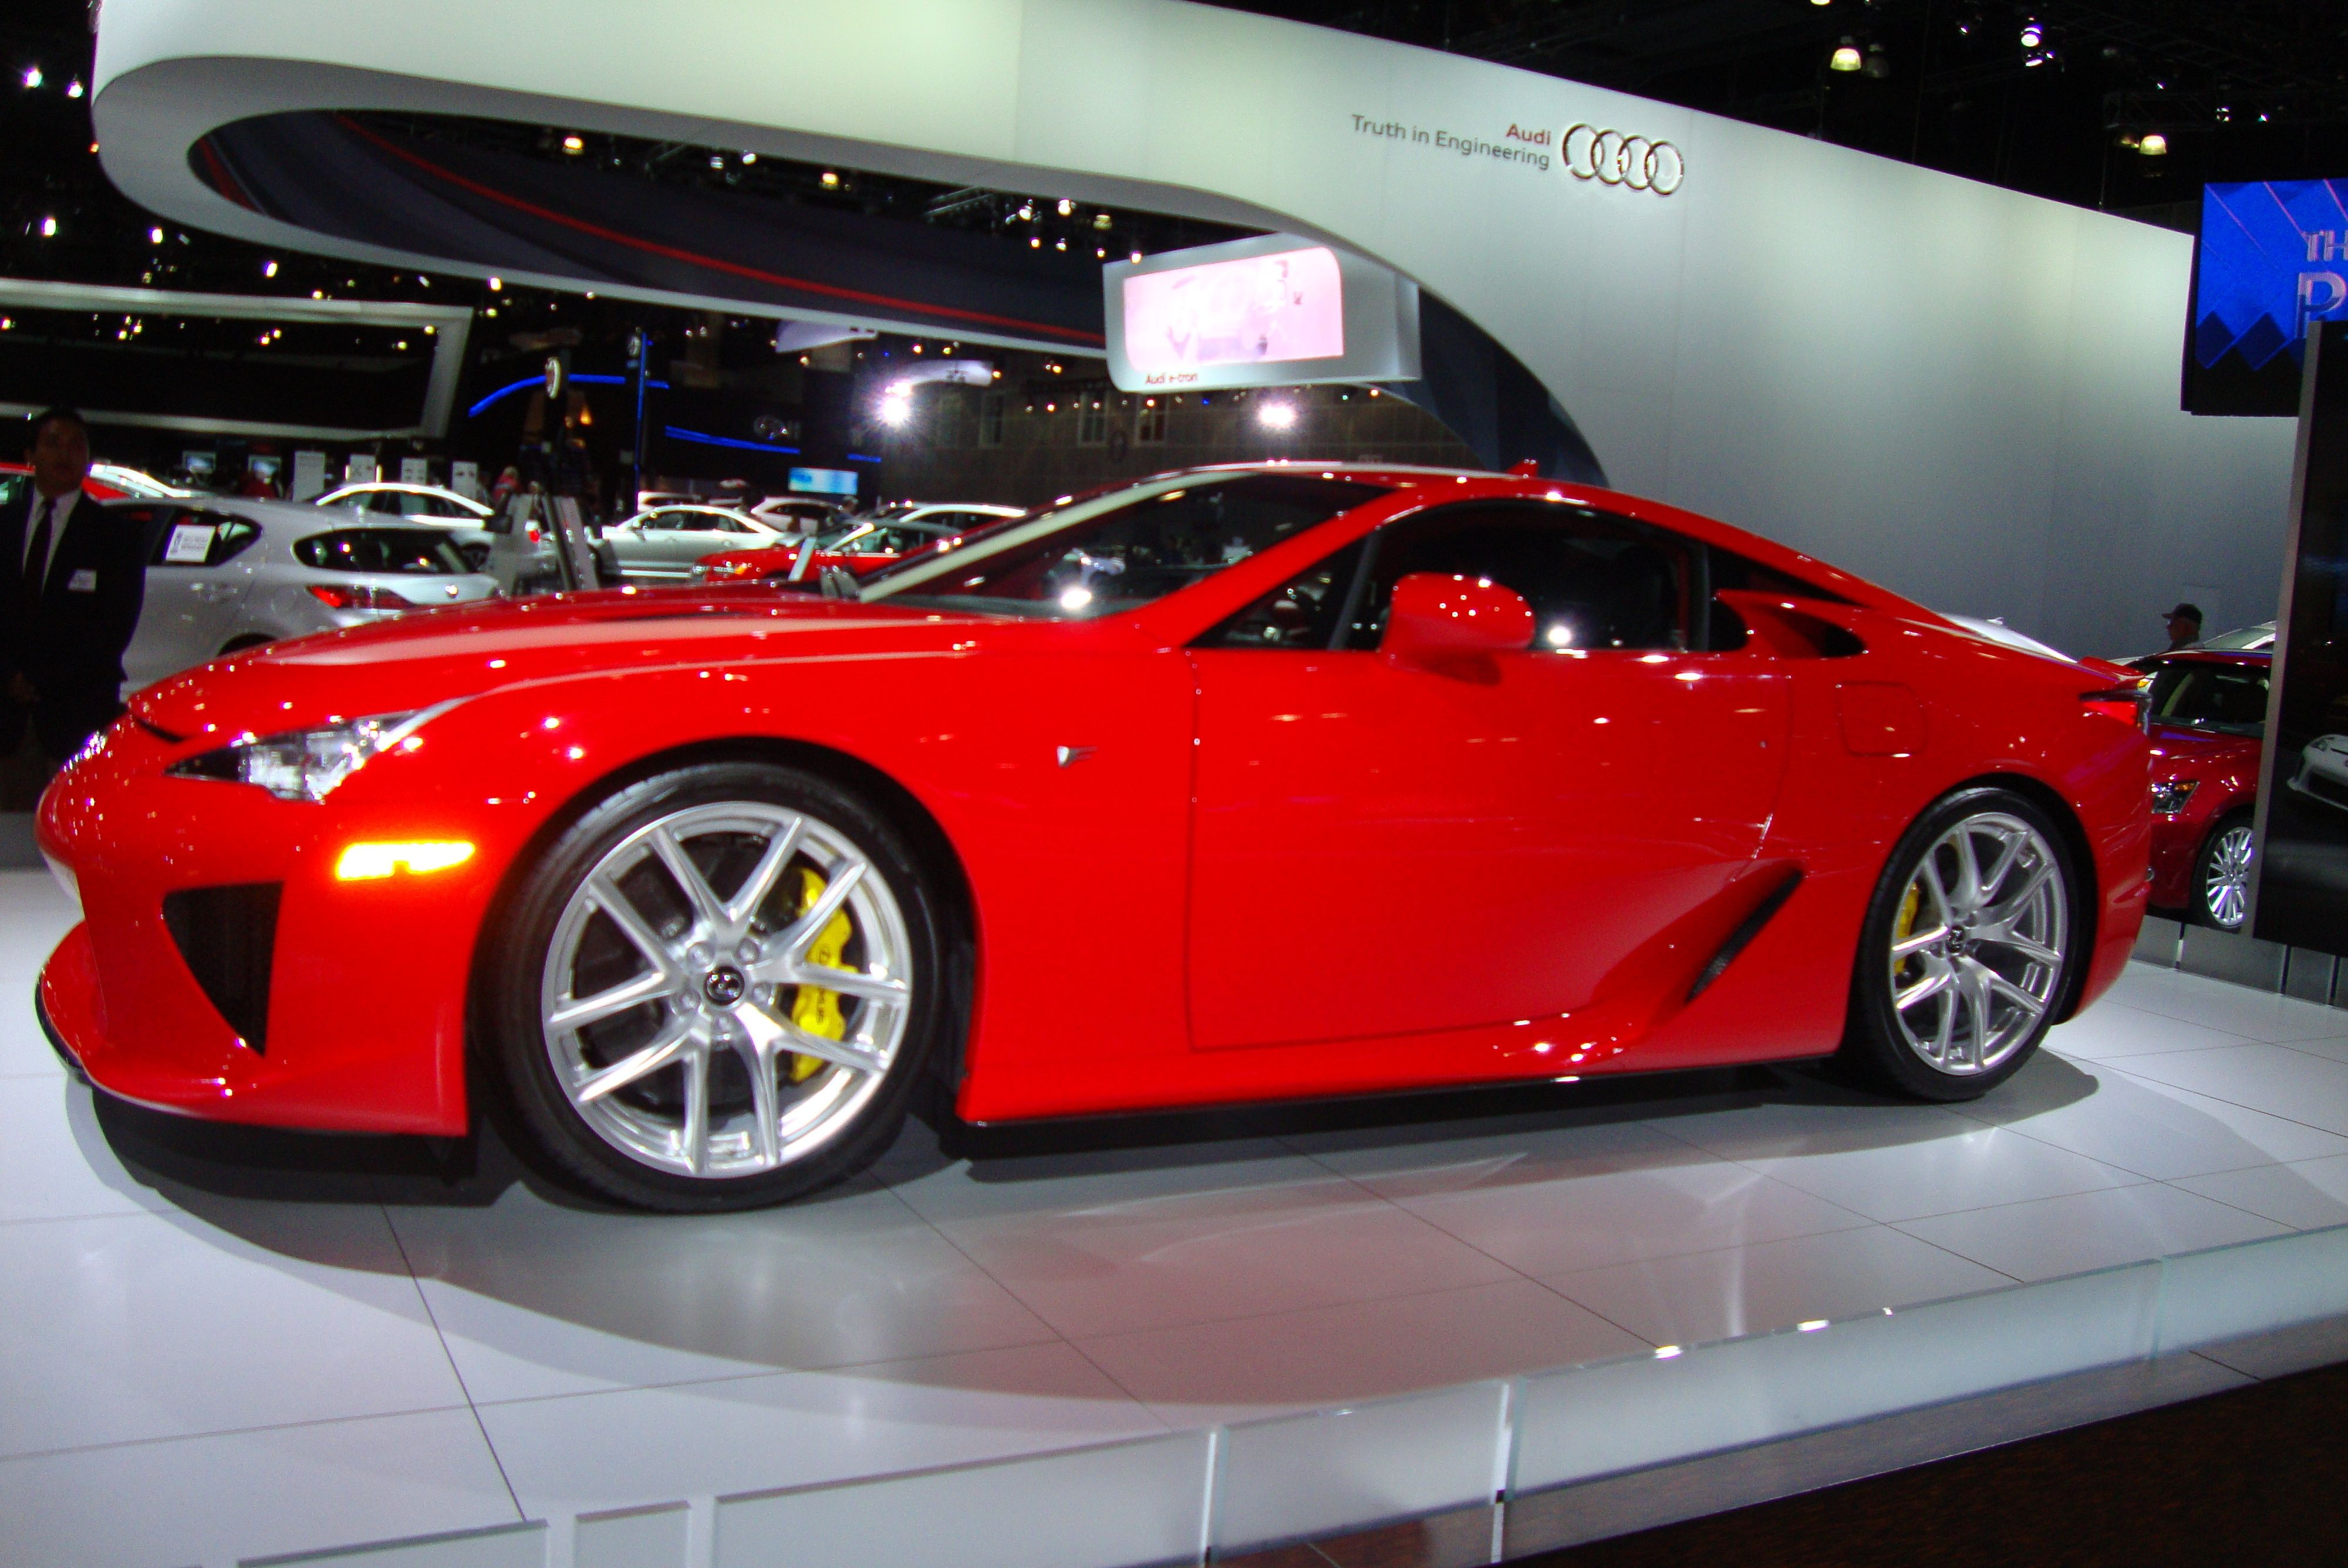 LEXUS LFA pic by me taken at the Los Angeles Auto Show